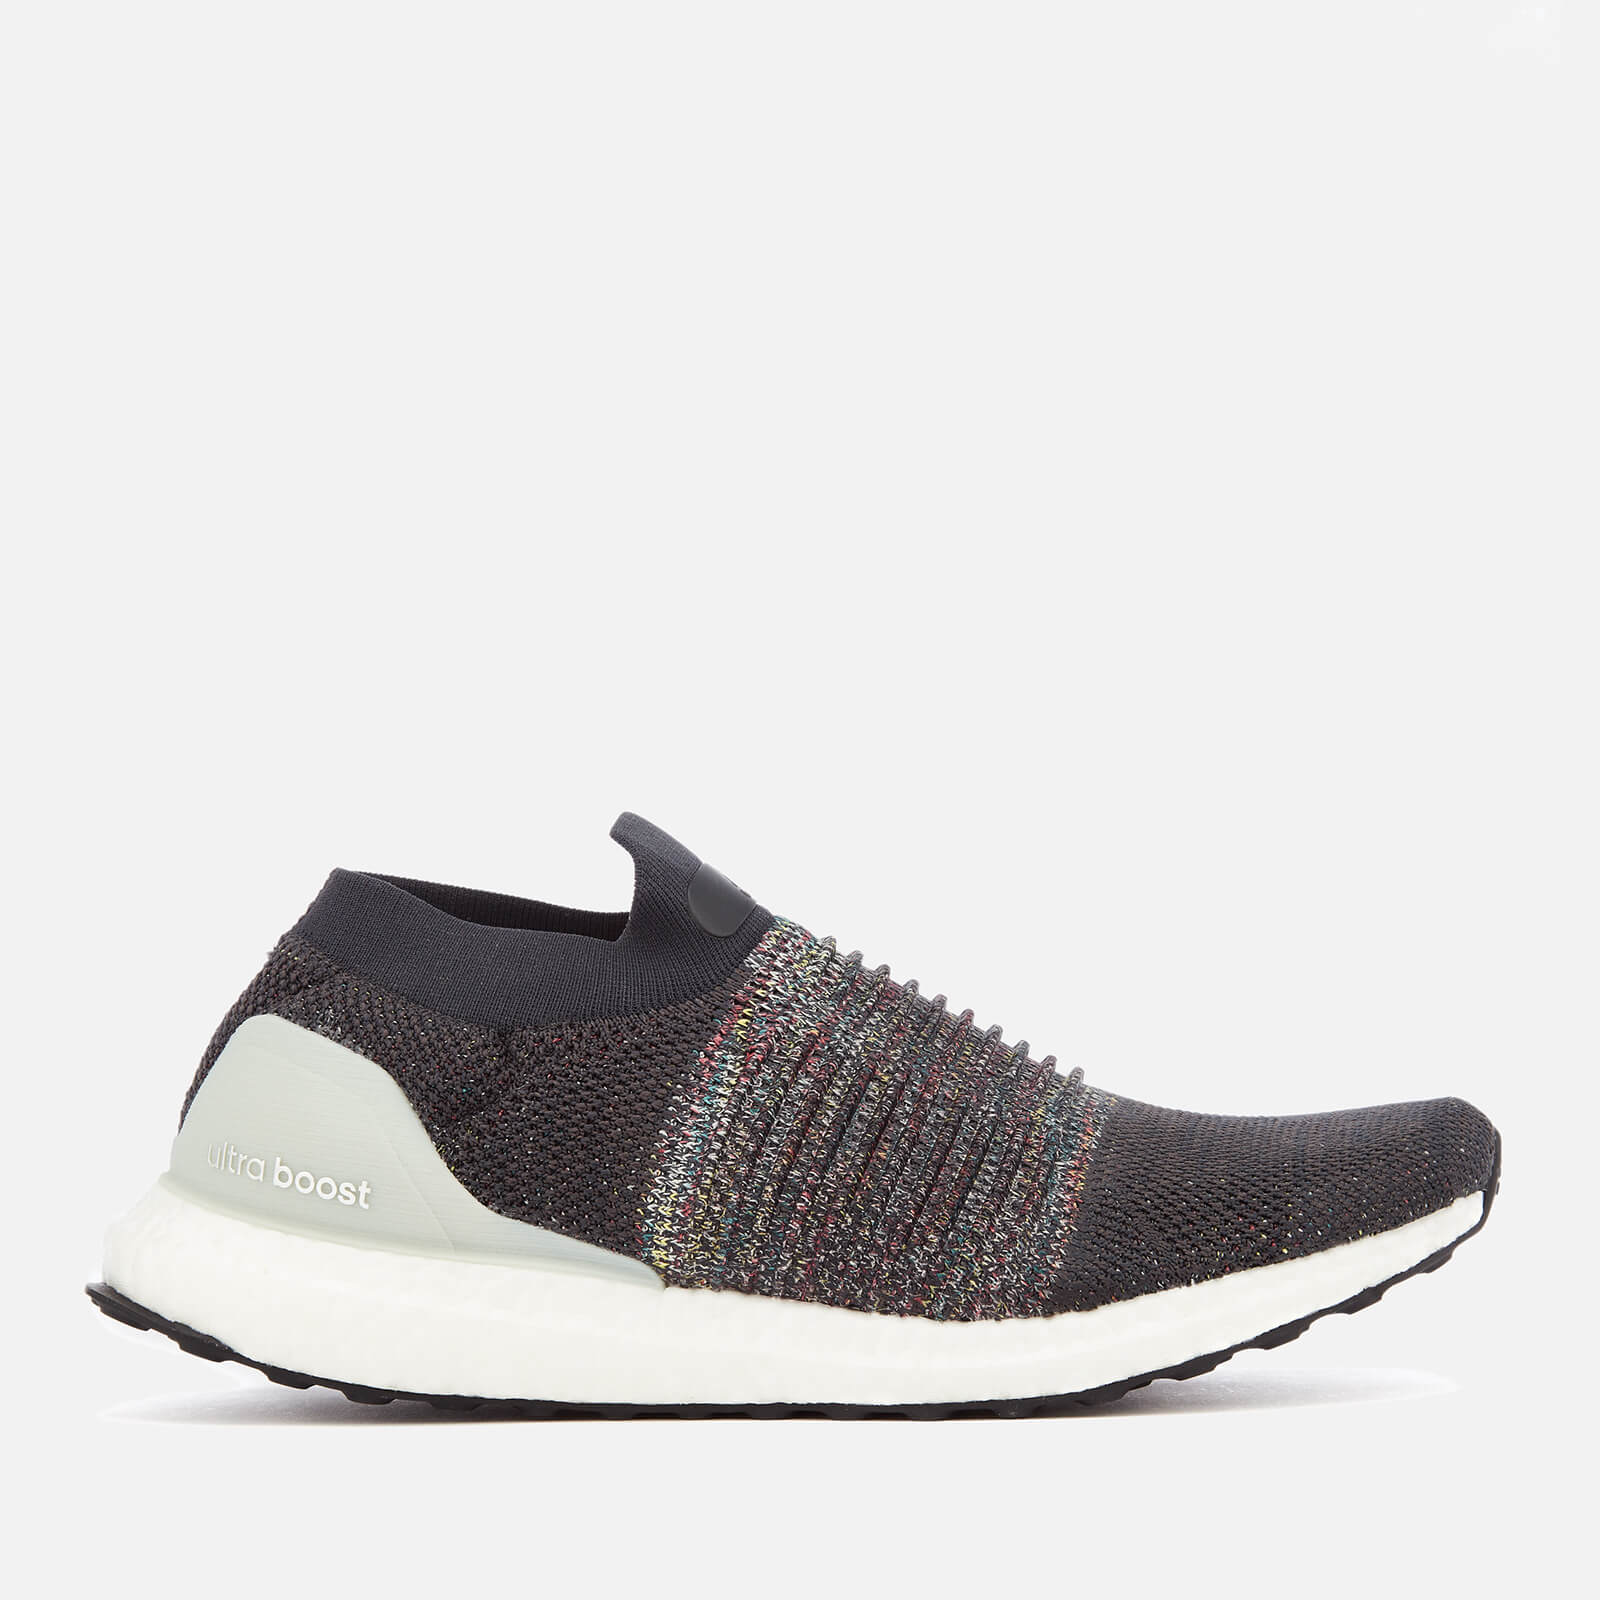 bf1170fdbcddc adidas Men s Ultraboost Laceless Trainers - Carbon